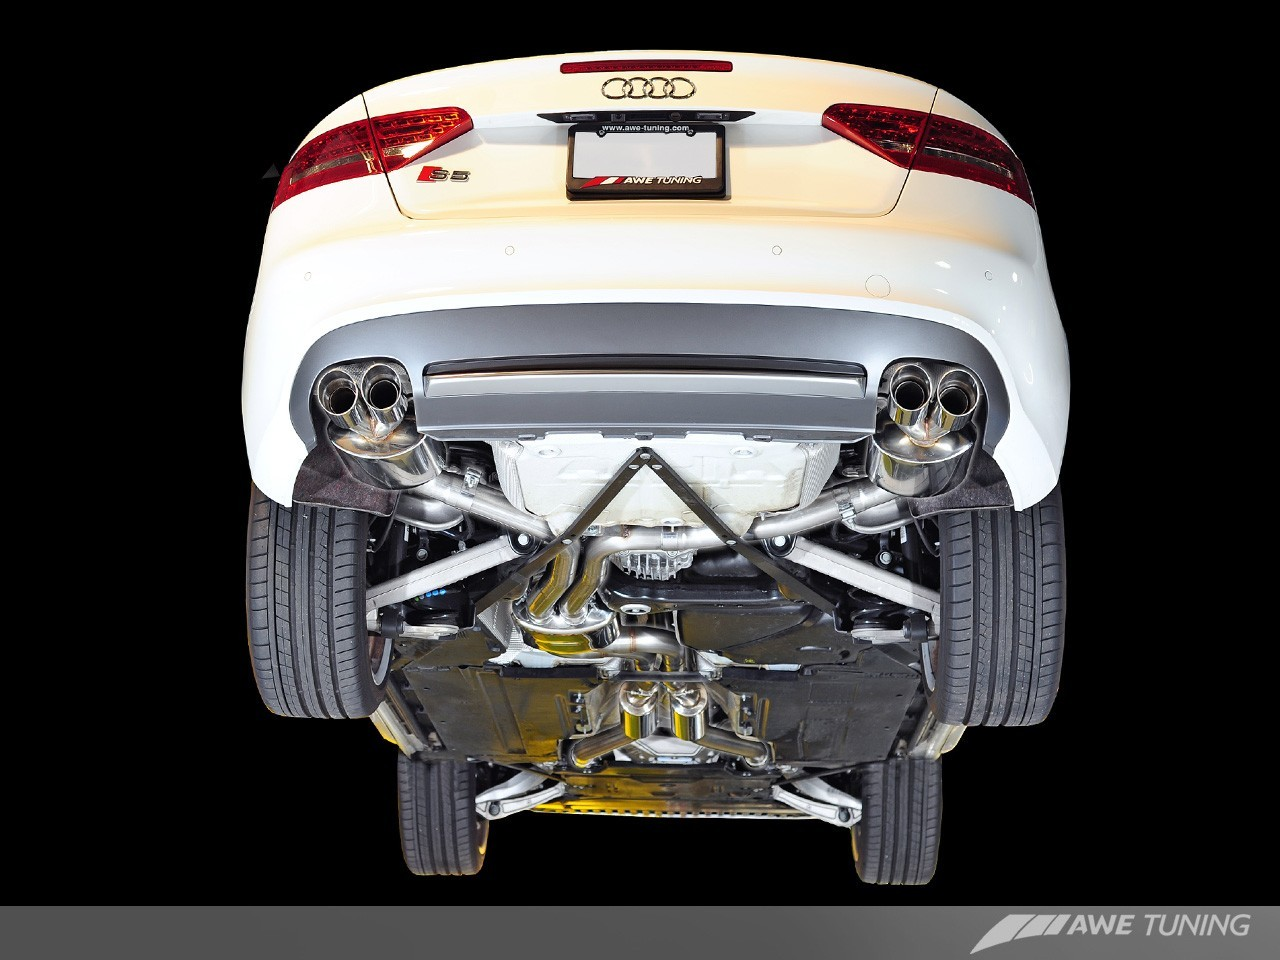 AWE Tuning Audi S5 Sportback 3 0TFSI Touring Edition Exhaust + Downpipes